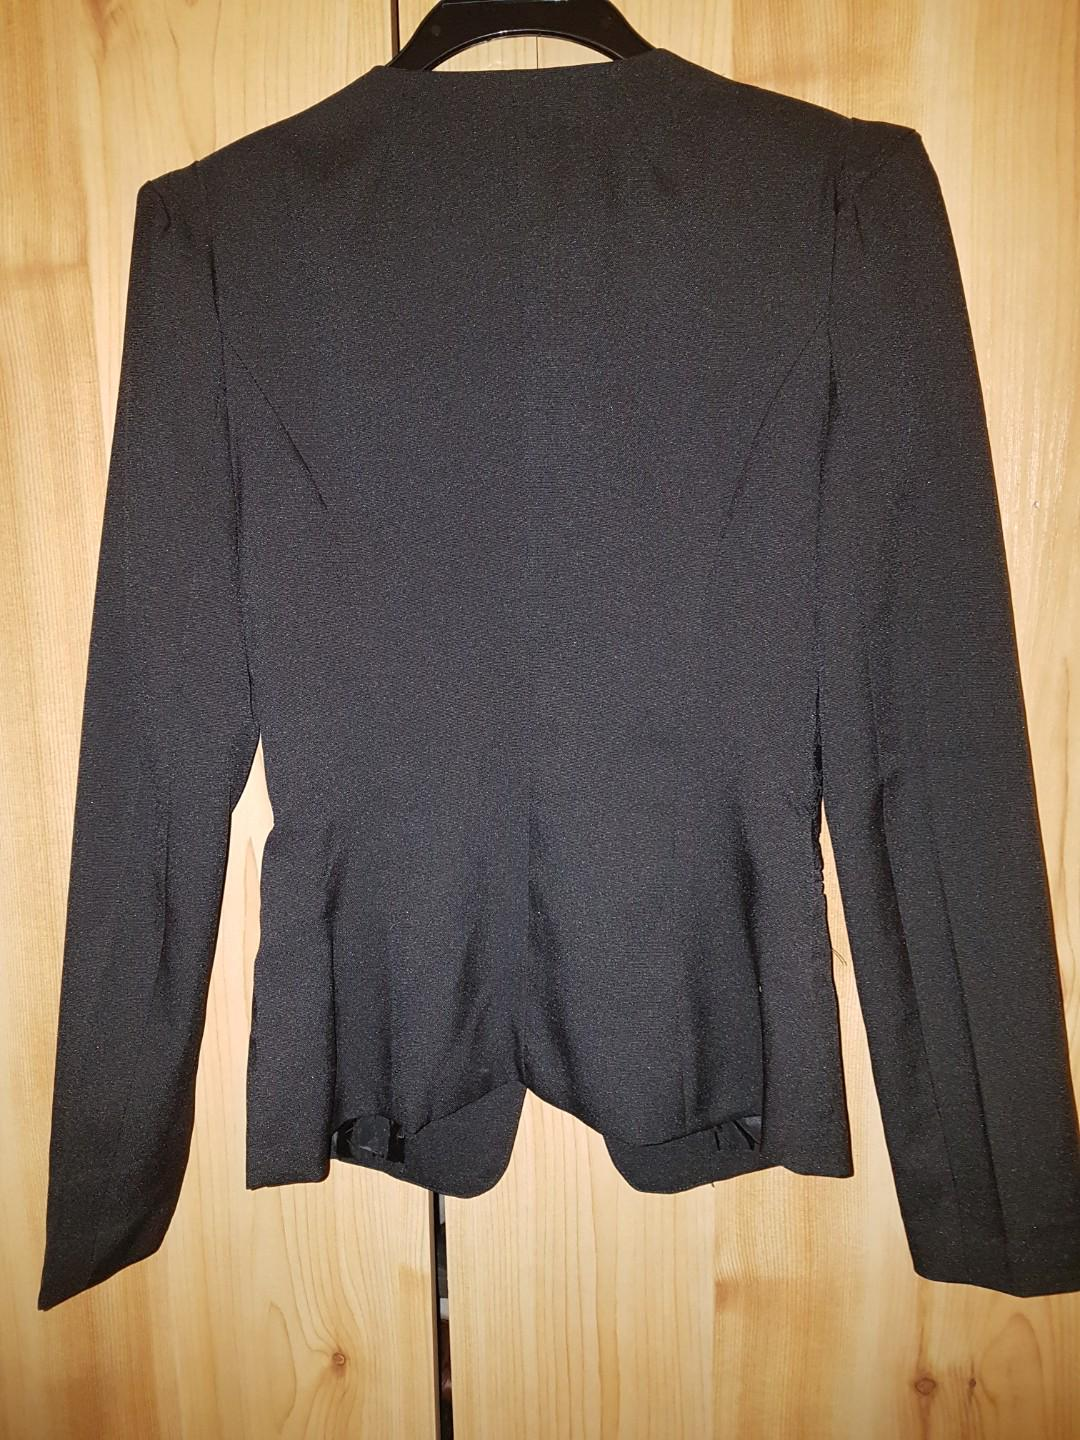 Designer embroidered blazer black